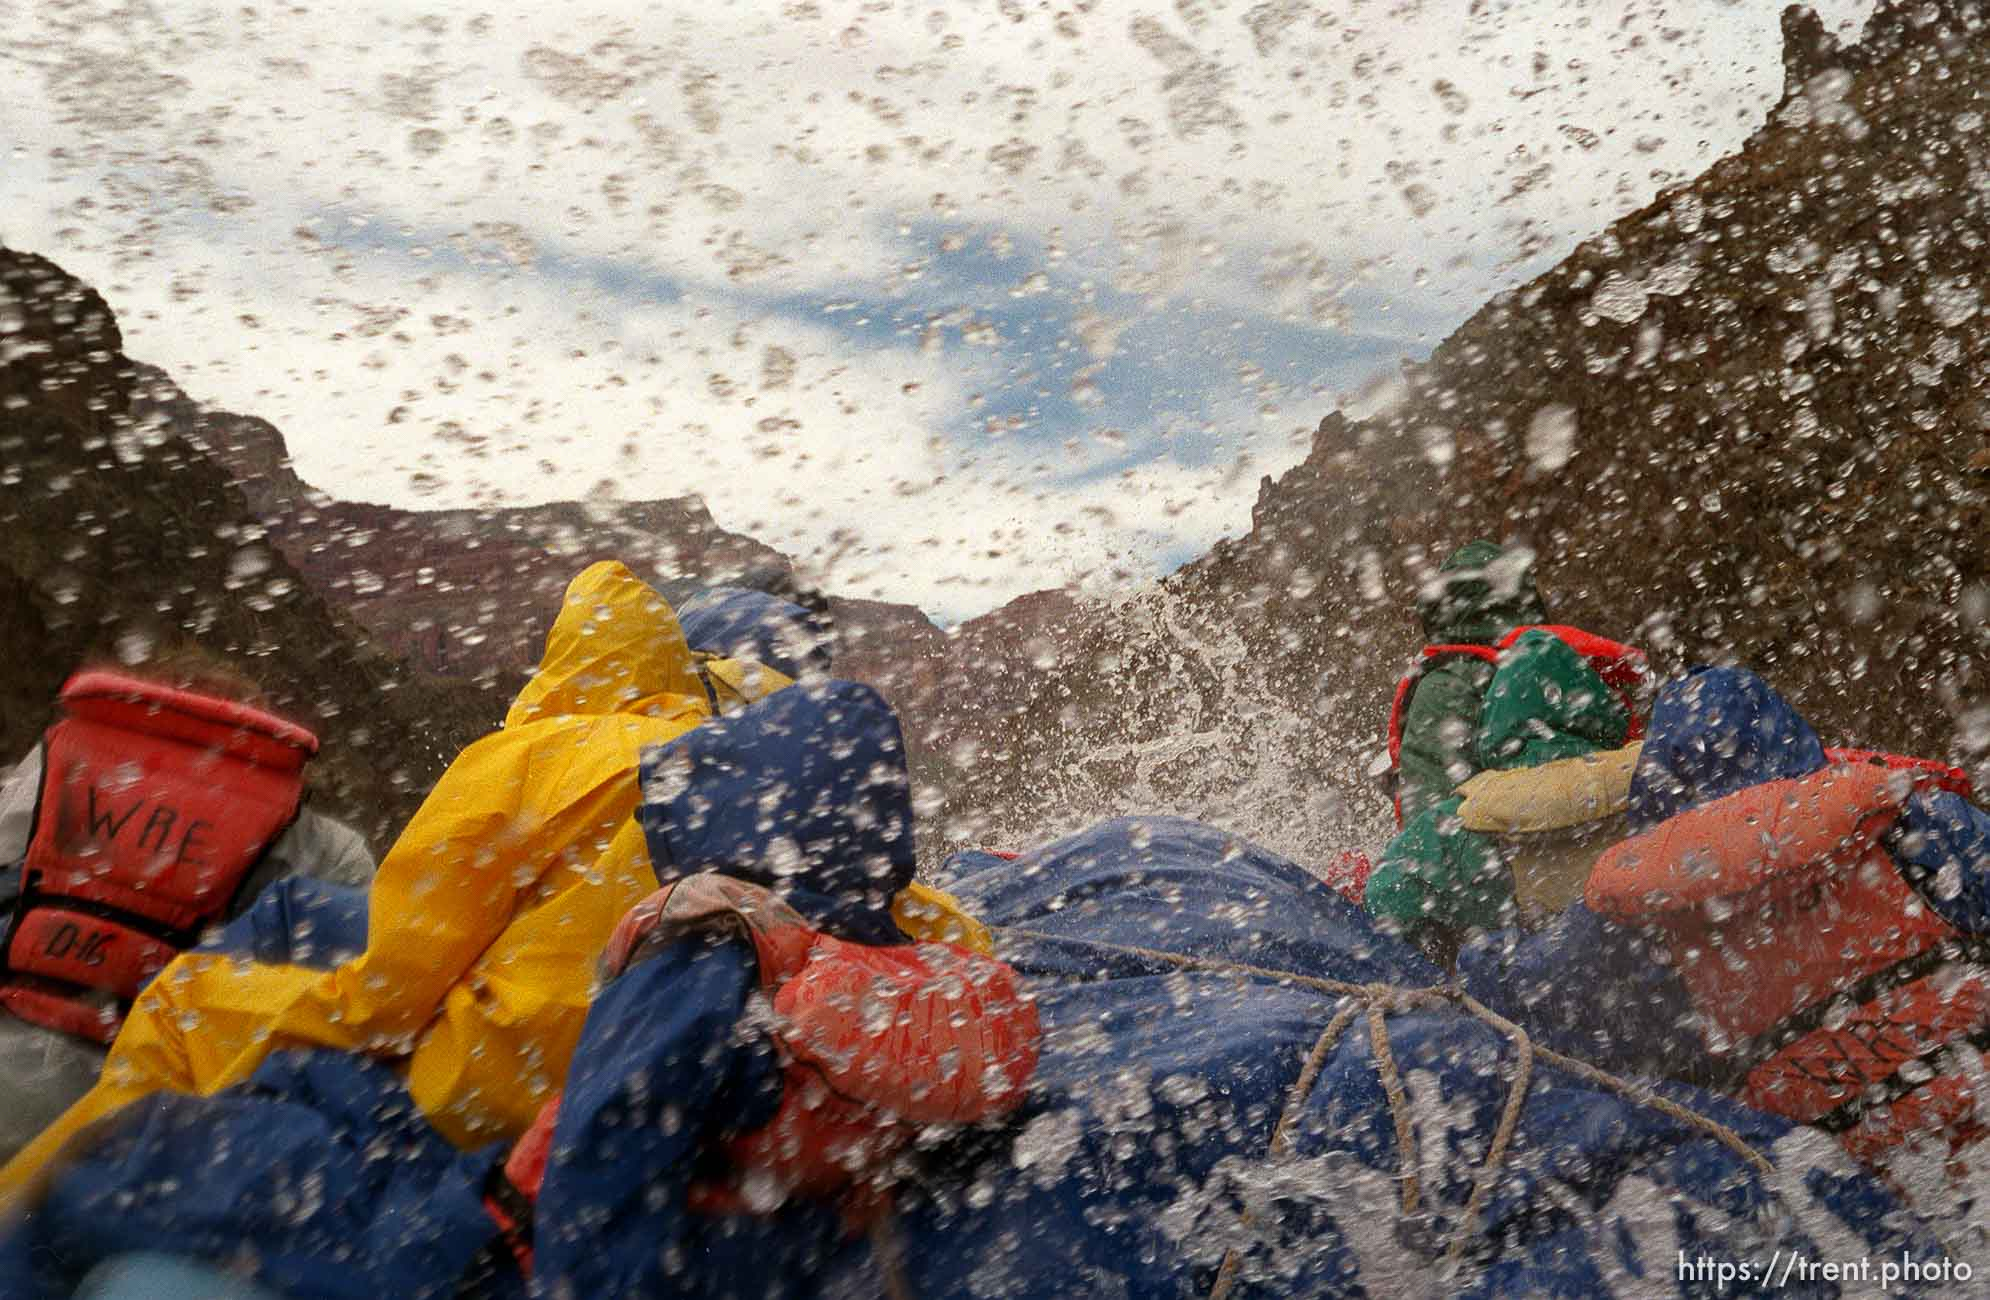 Whitewater rafting. Grand Canyon flood trip.